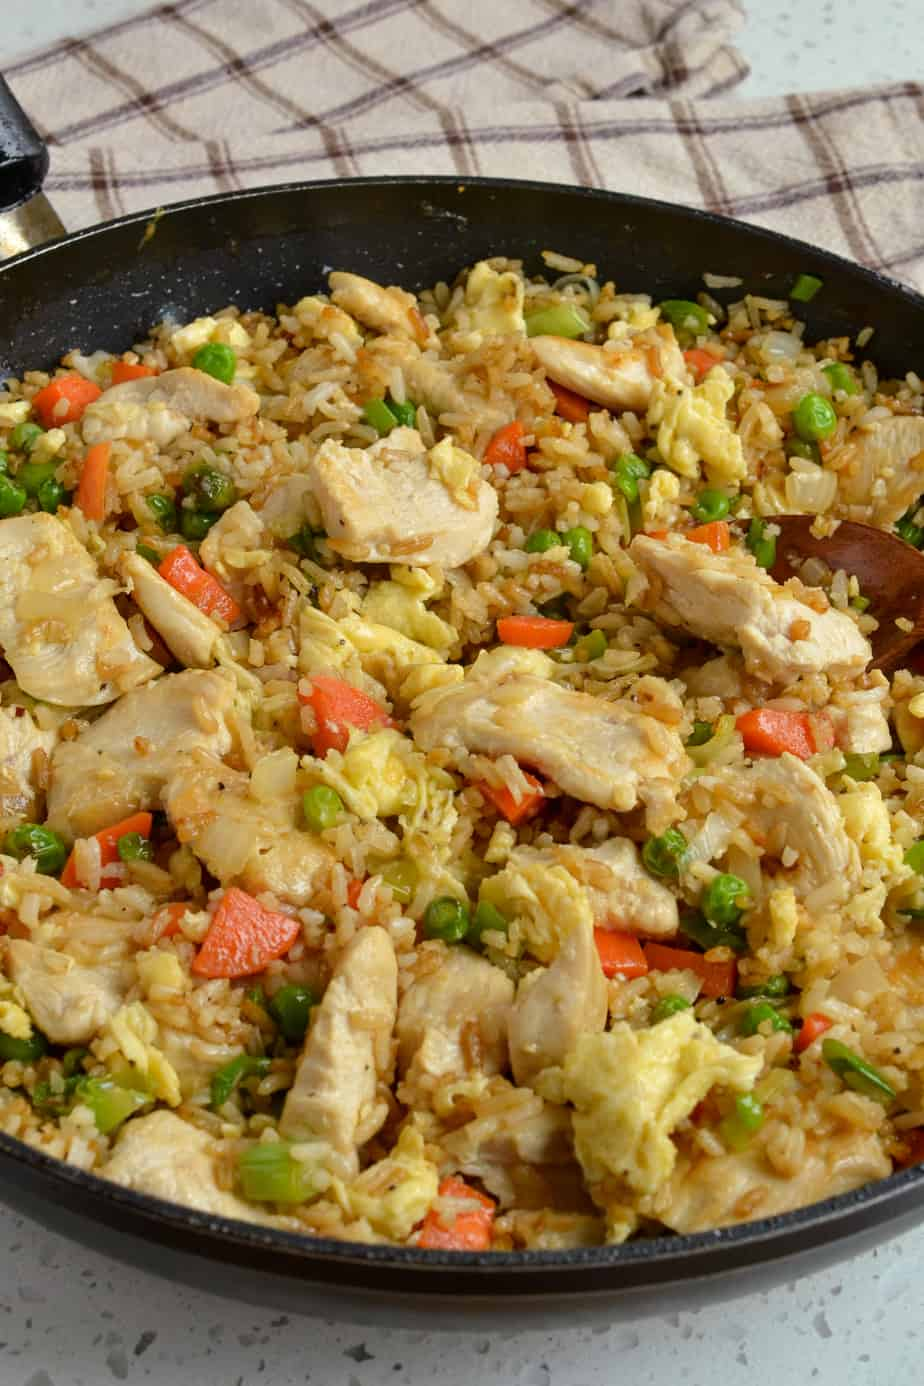 Chicken fried rice in a skillet.